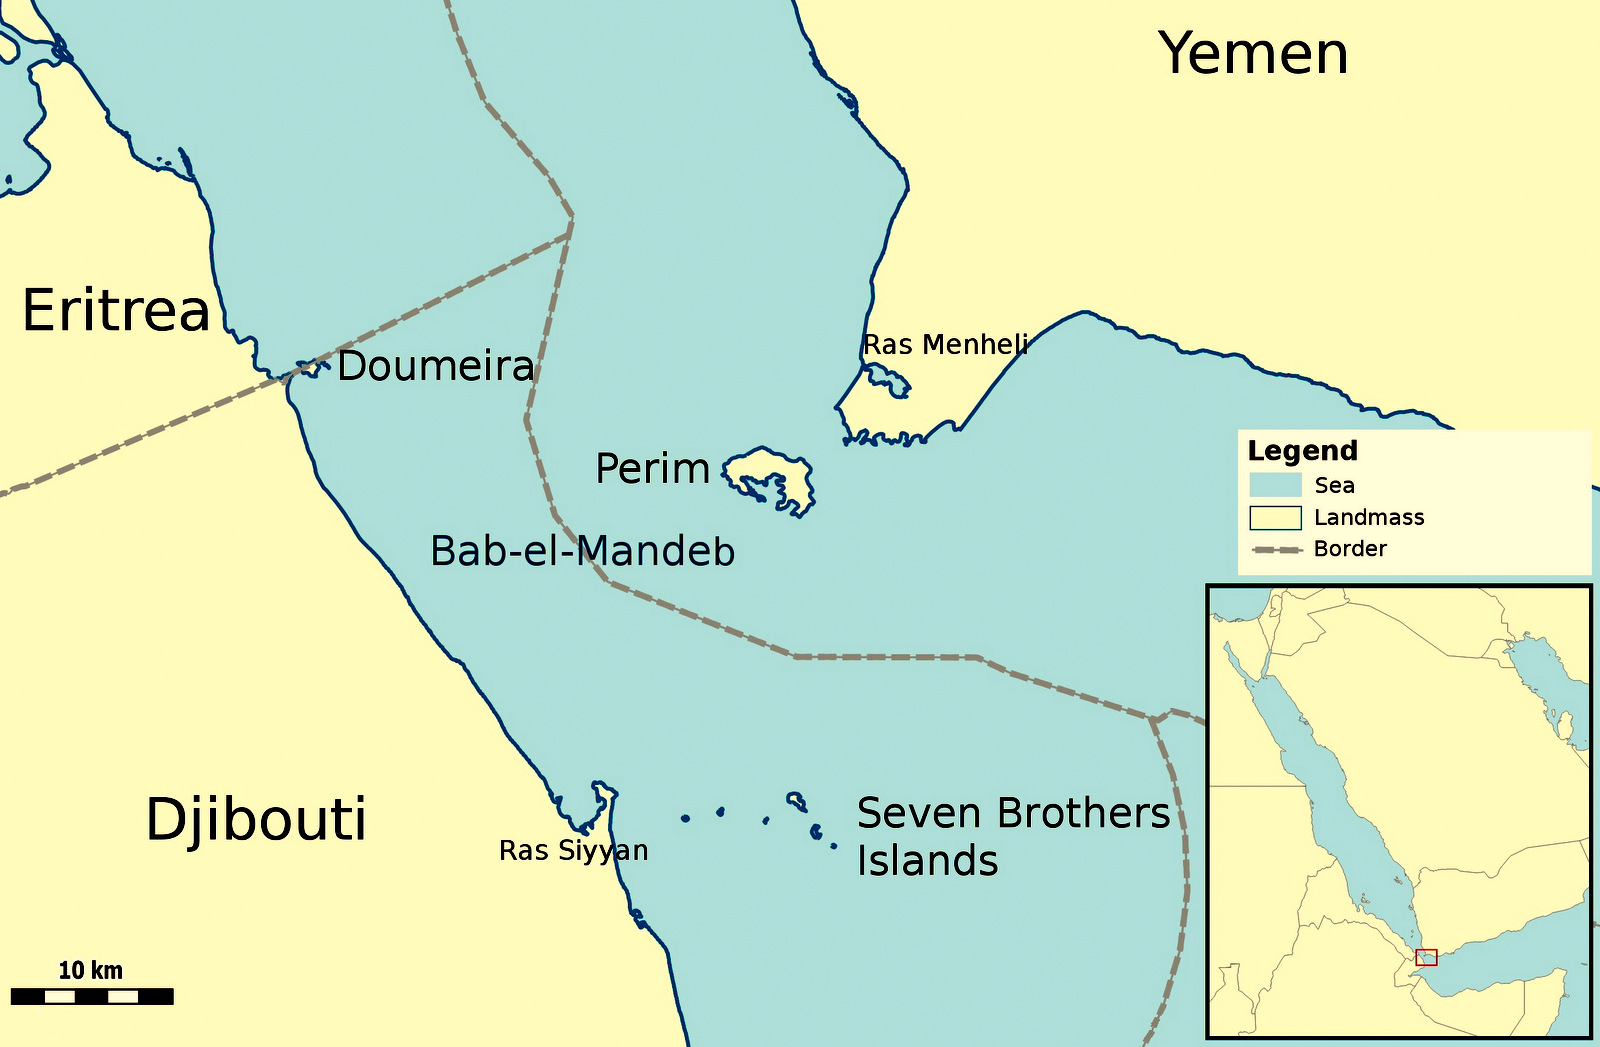 A Map of Bab-el-Mandeb, the world's primary oil route connecting the Red Sea to the Aiden Sea.